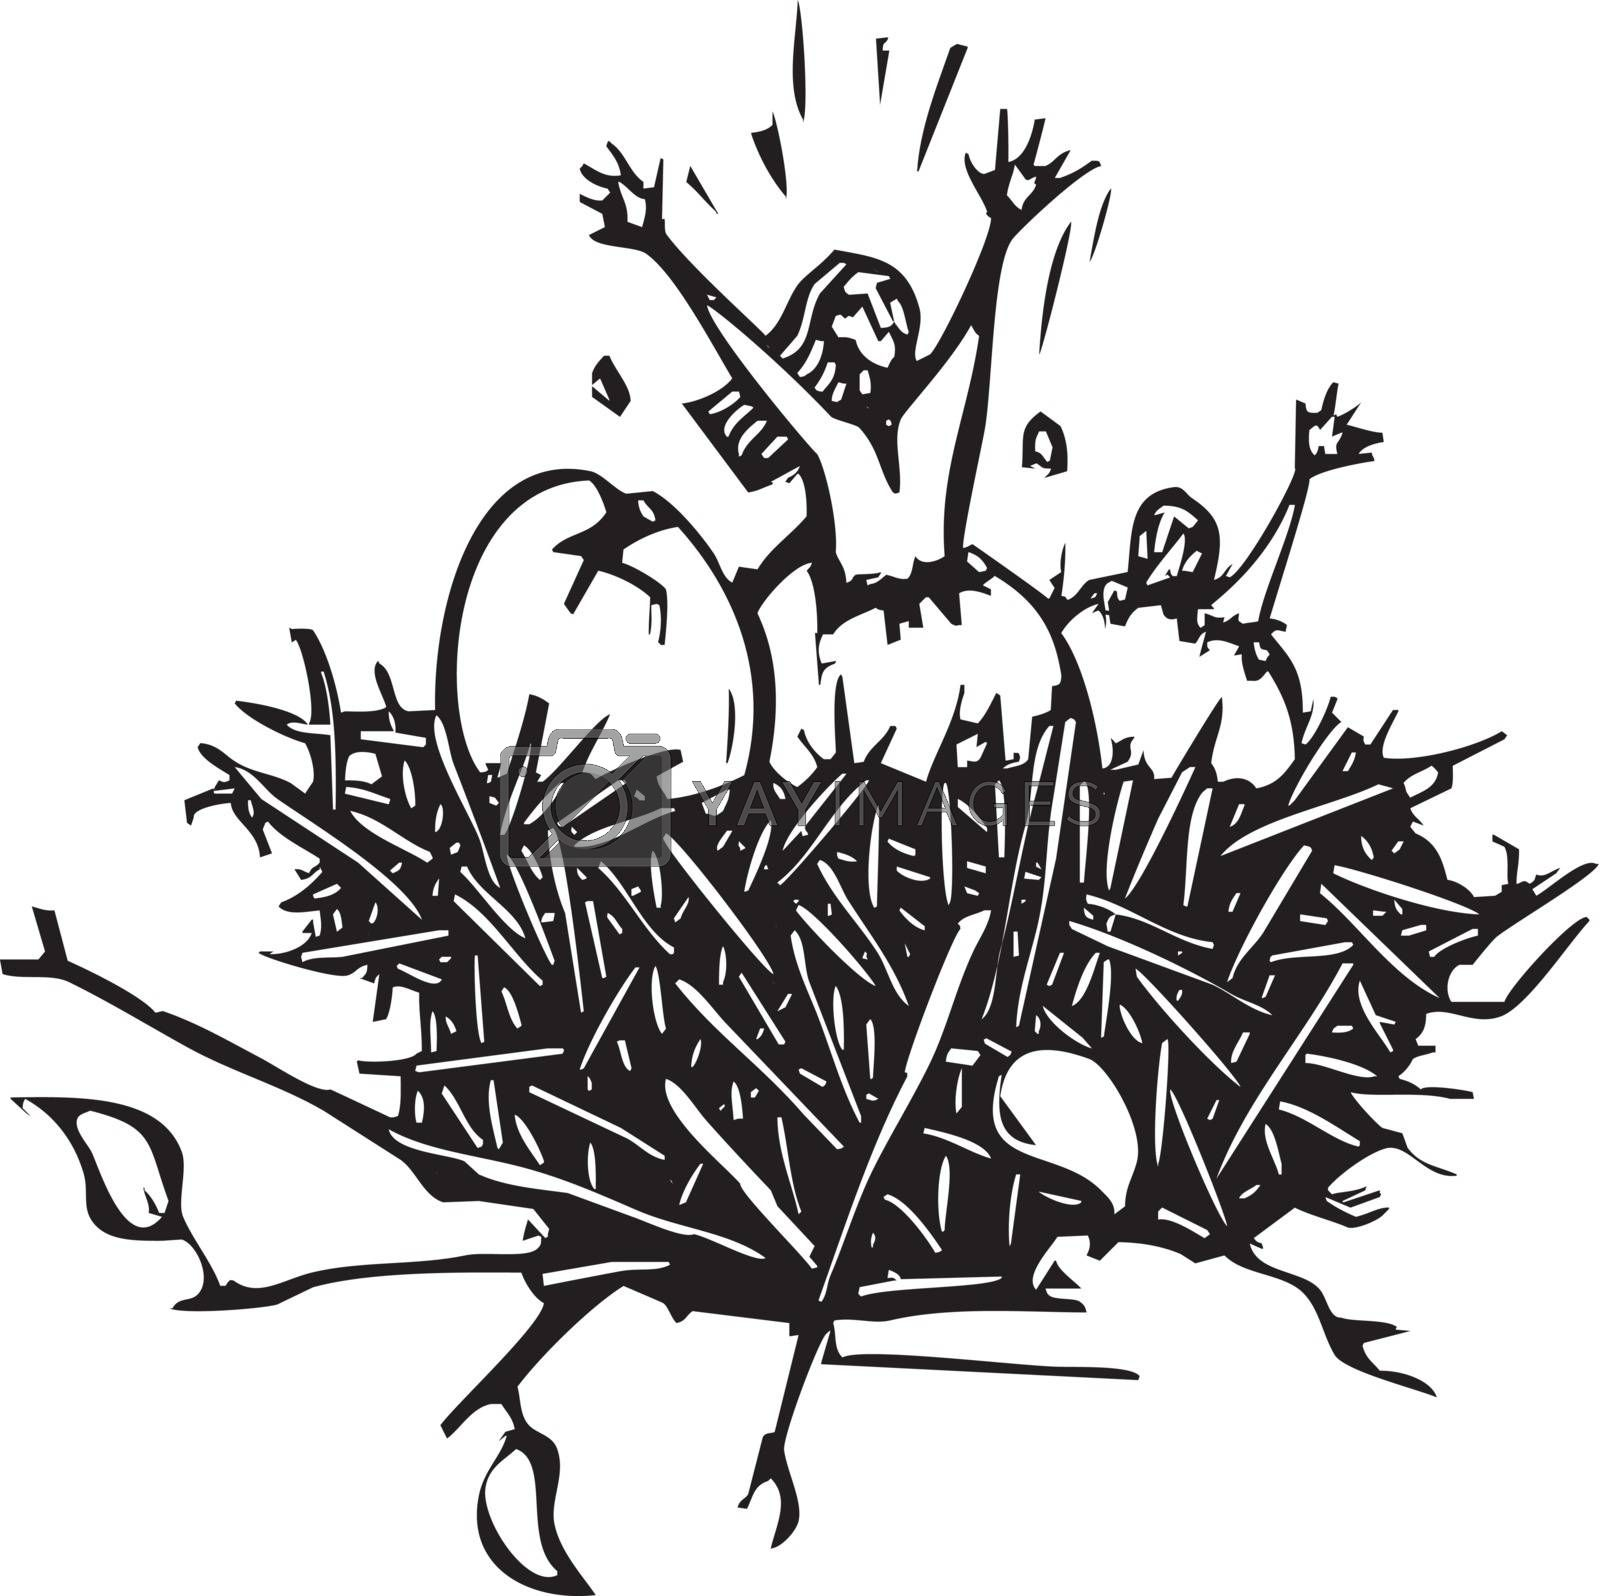 Woodcut style image of a woman breaking out of an eggshell.